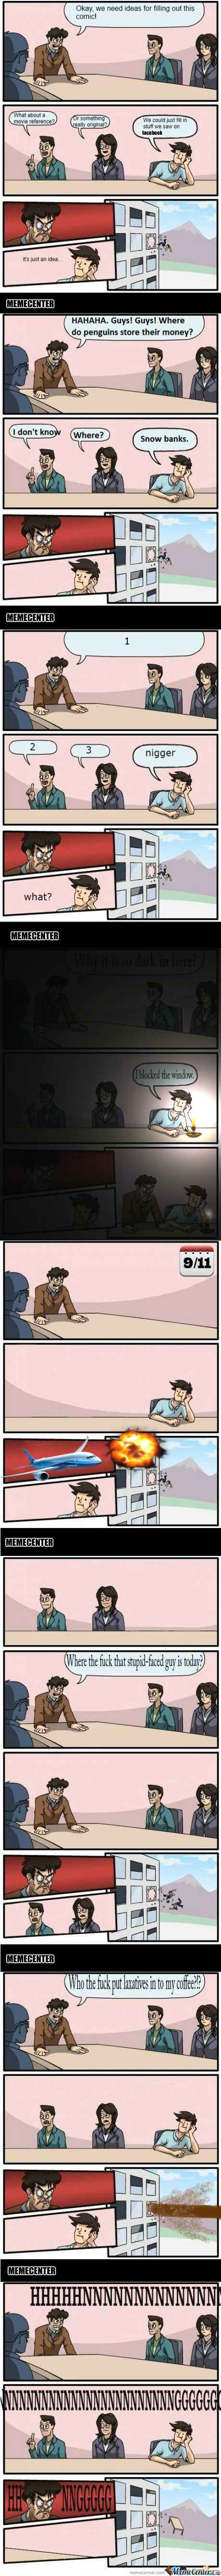 Boardroom Suggestion Compilation